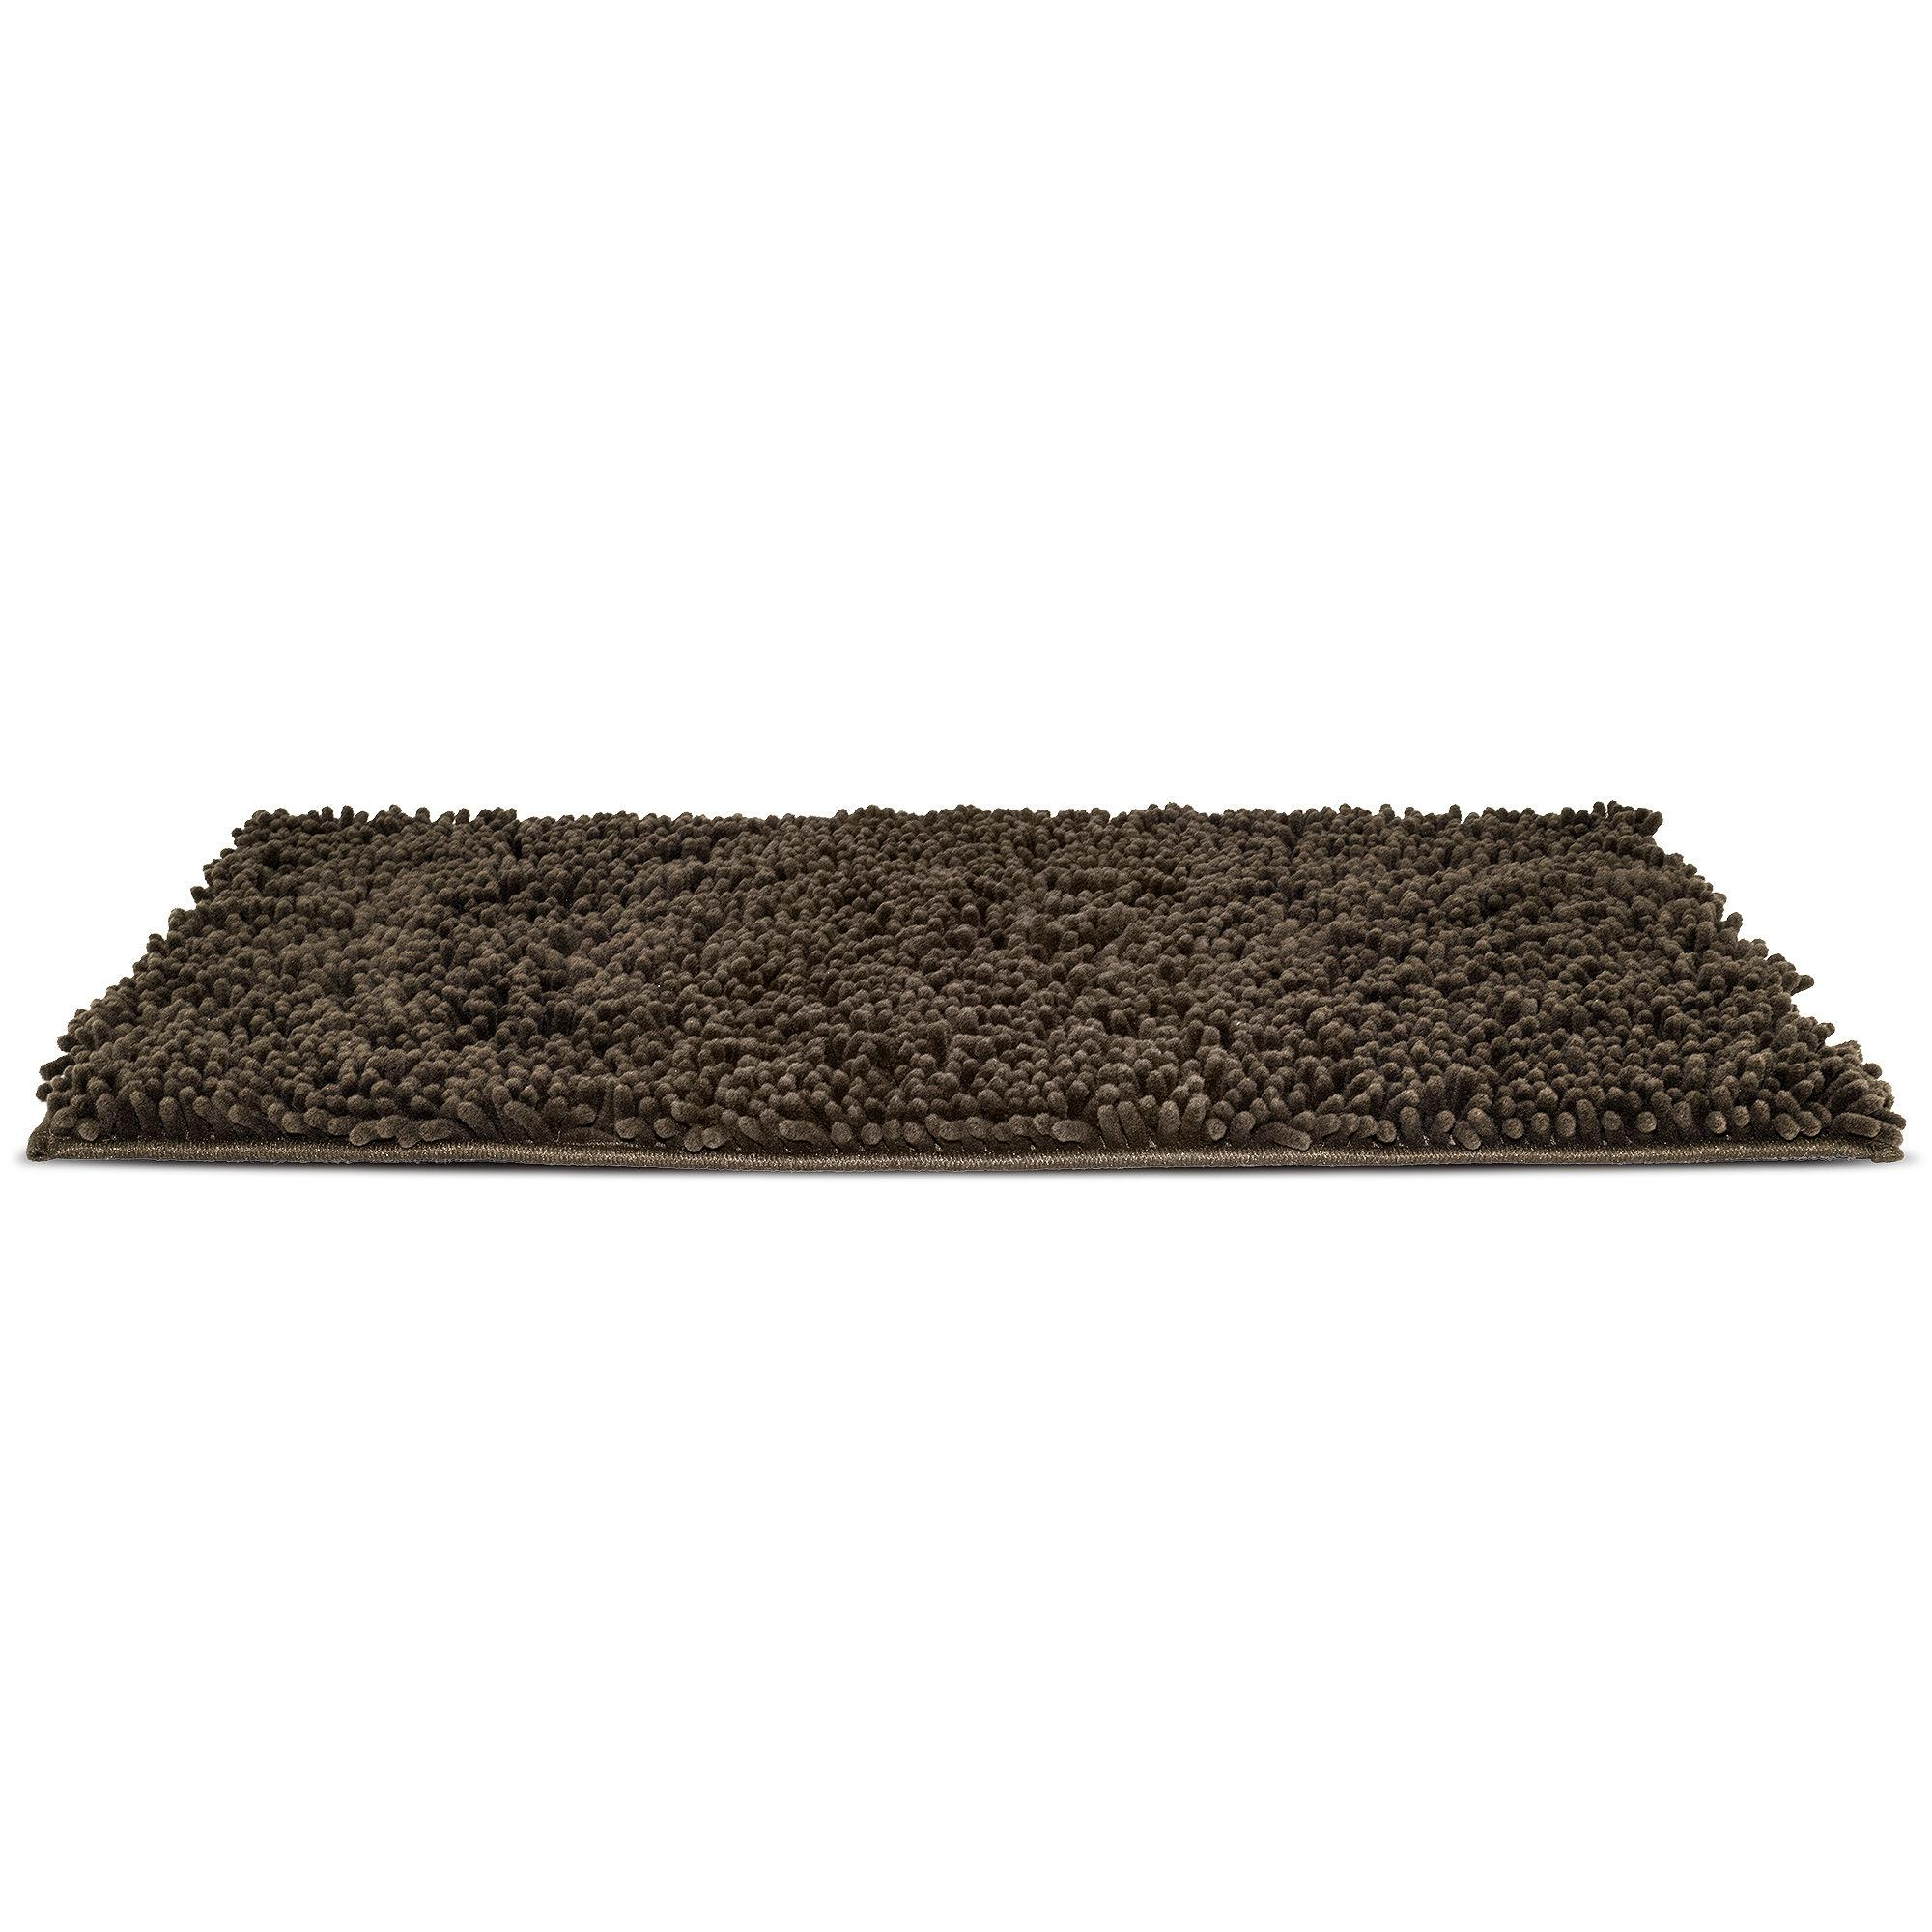 FurHaven Muddy Paws Towel & Shammy Dog Rug - Mud